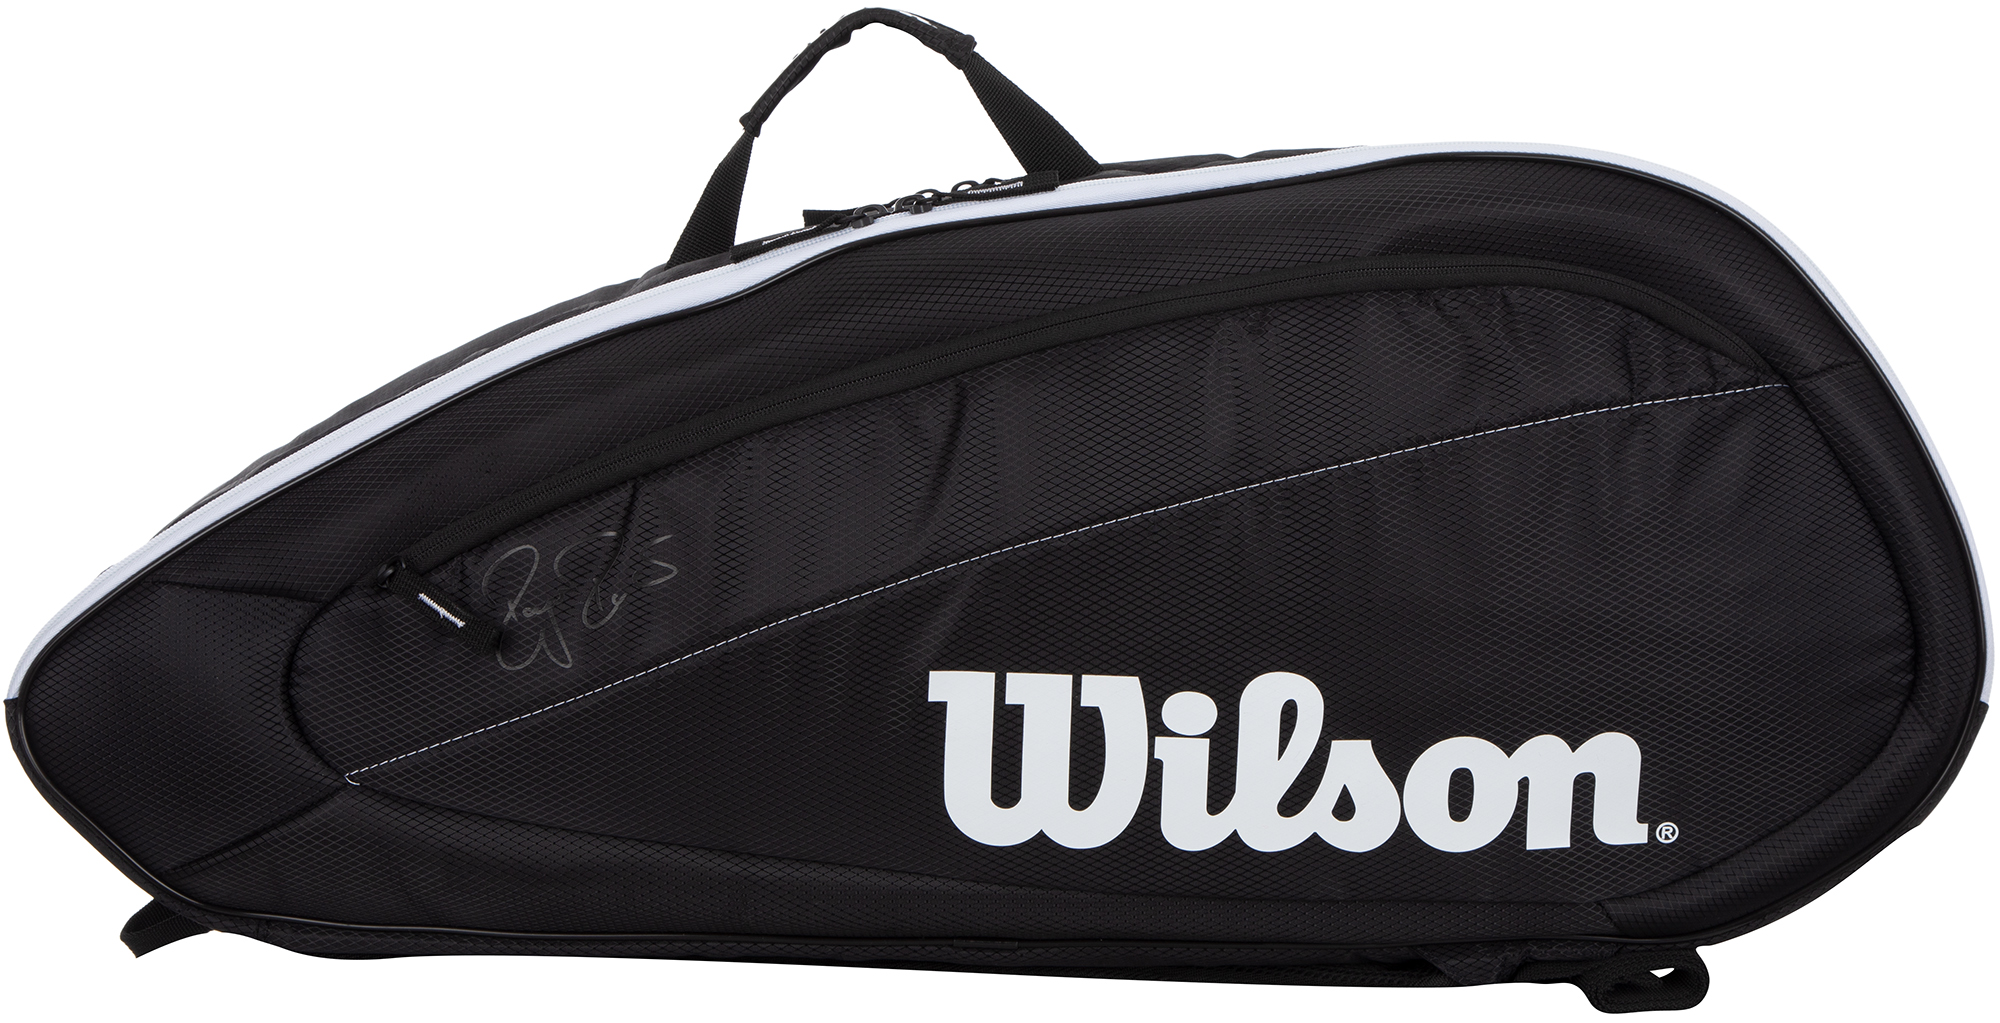 Wilson Сумка для 6 ракеток Wilson Fed Team 6 Pack виброгаситель wilson emotisorbs assorted pack смайлик